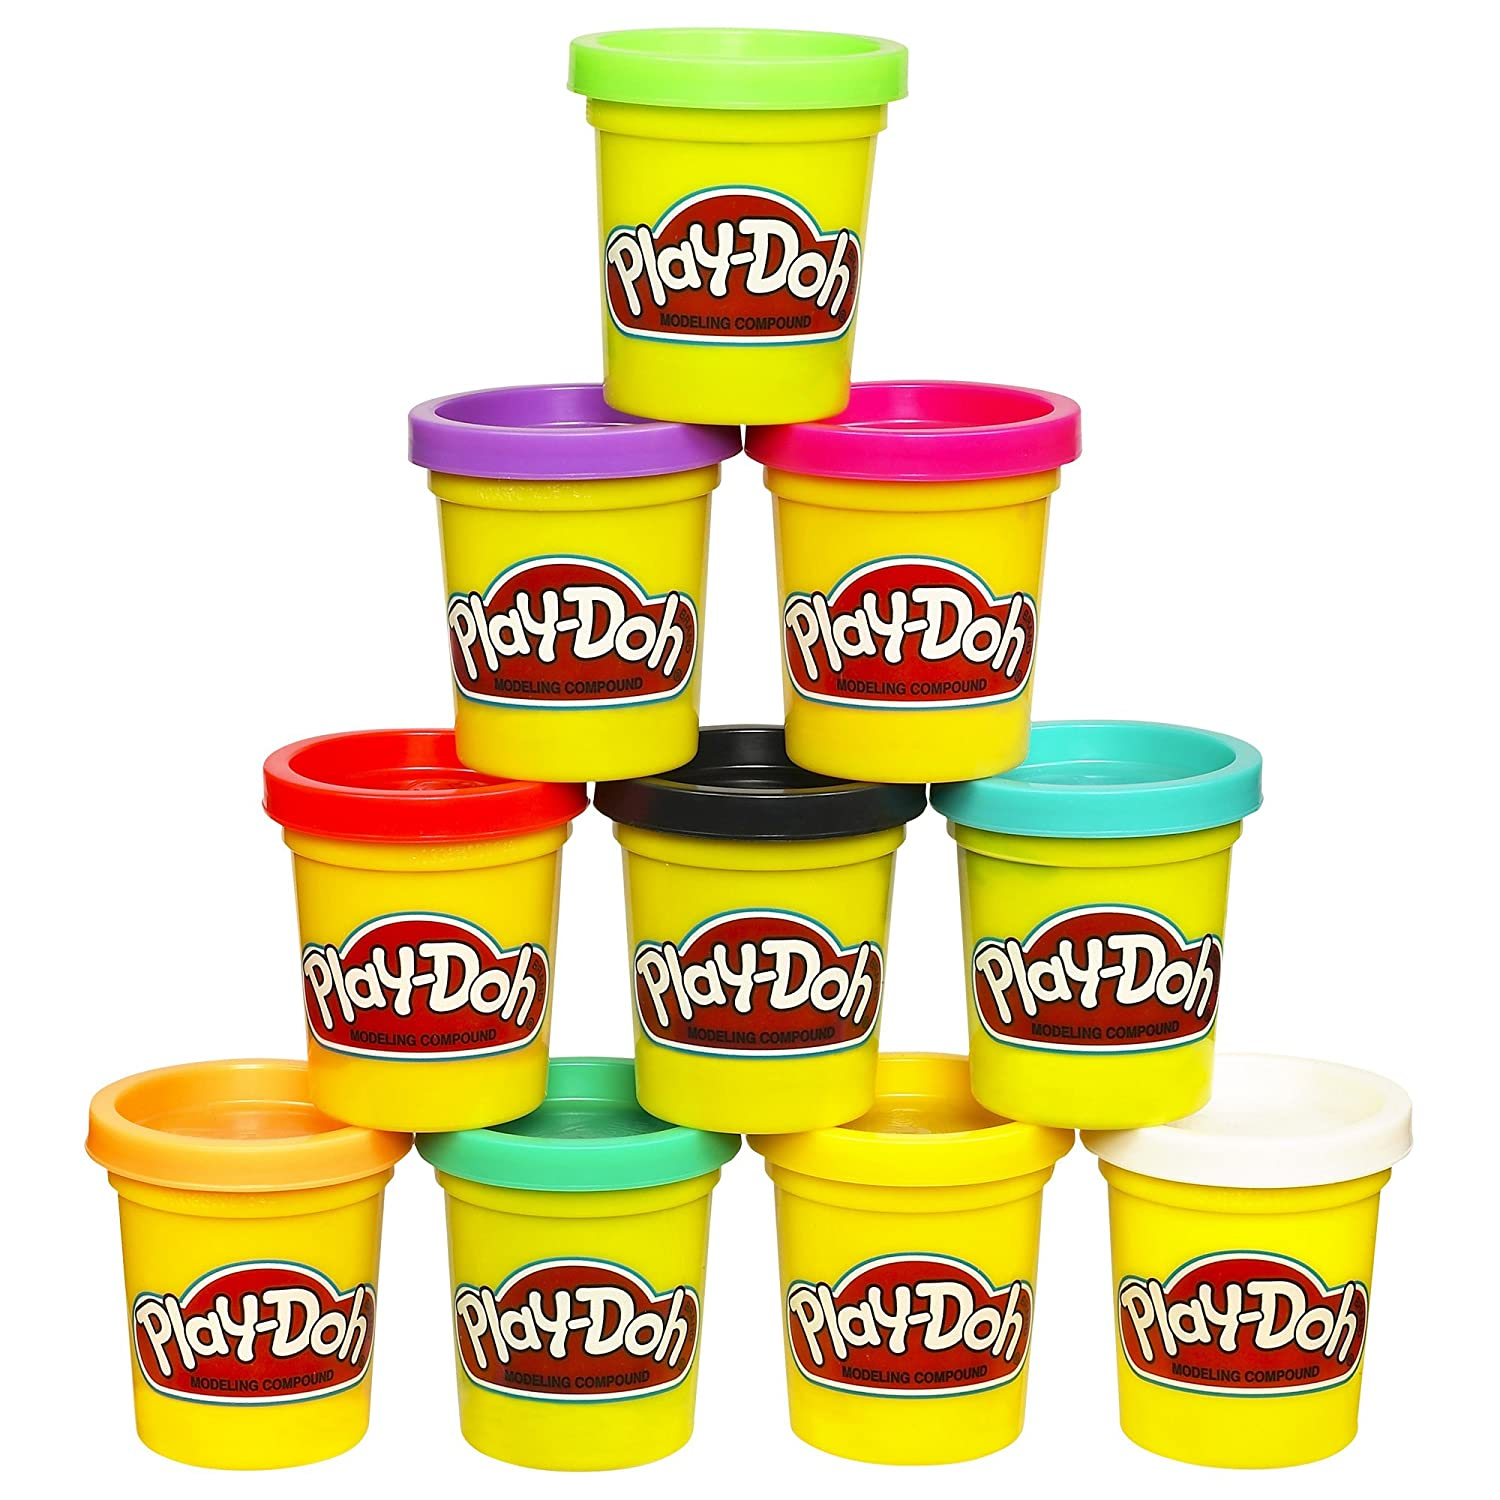 Play-Doh 10-Pack of Colors